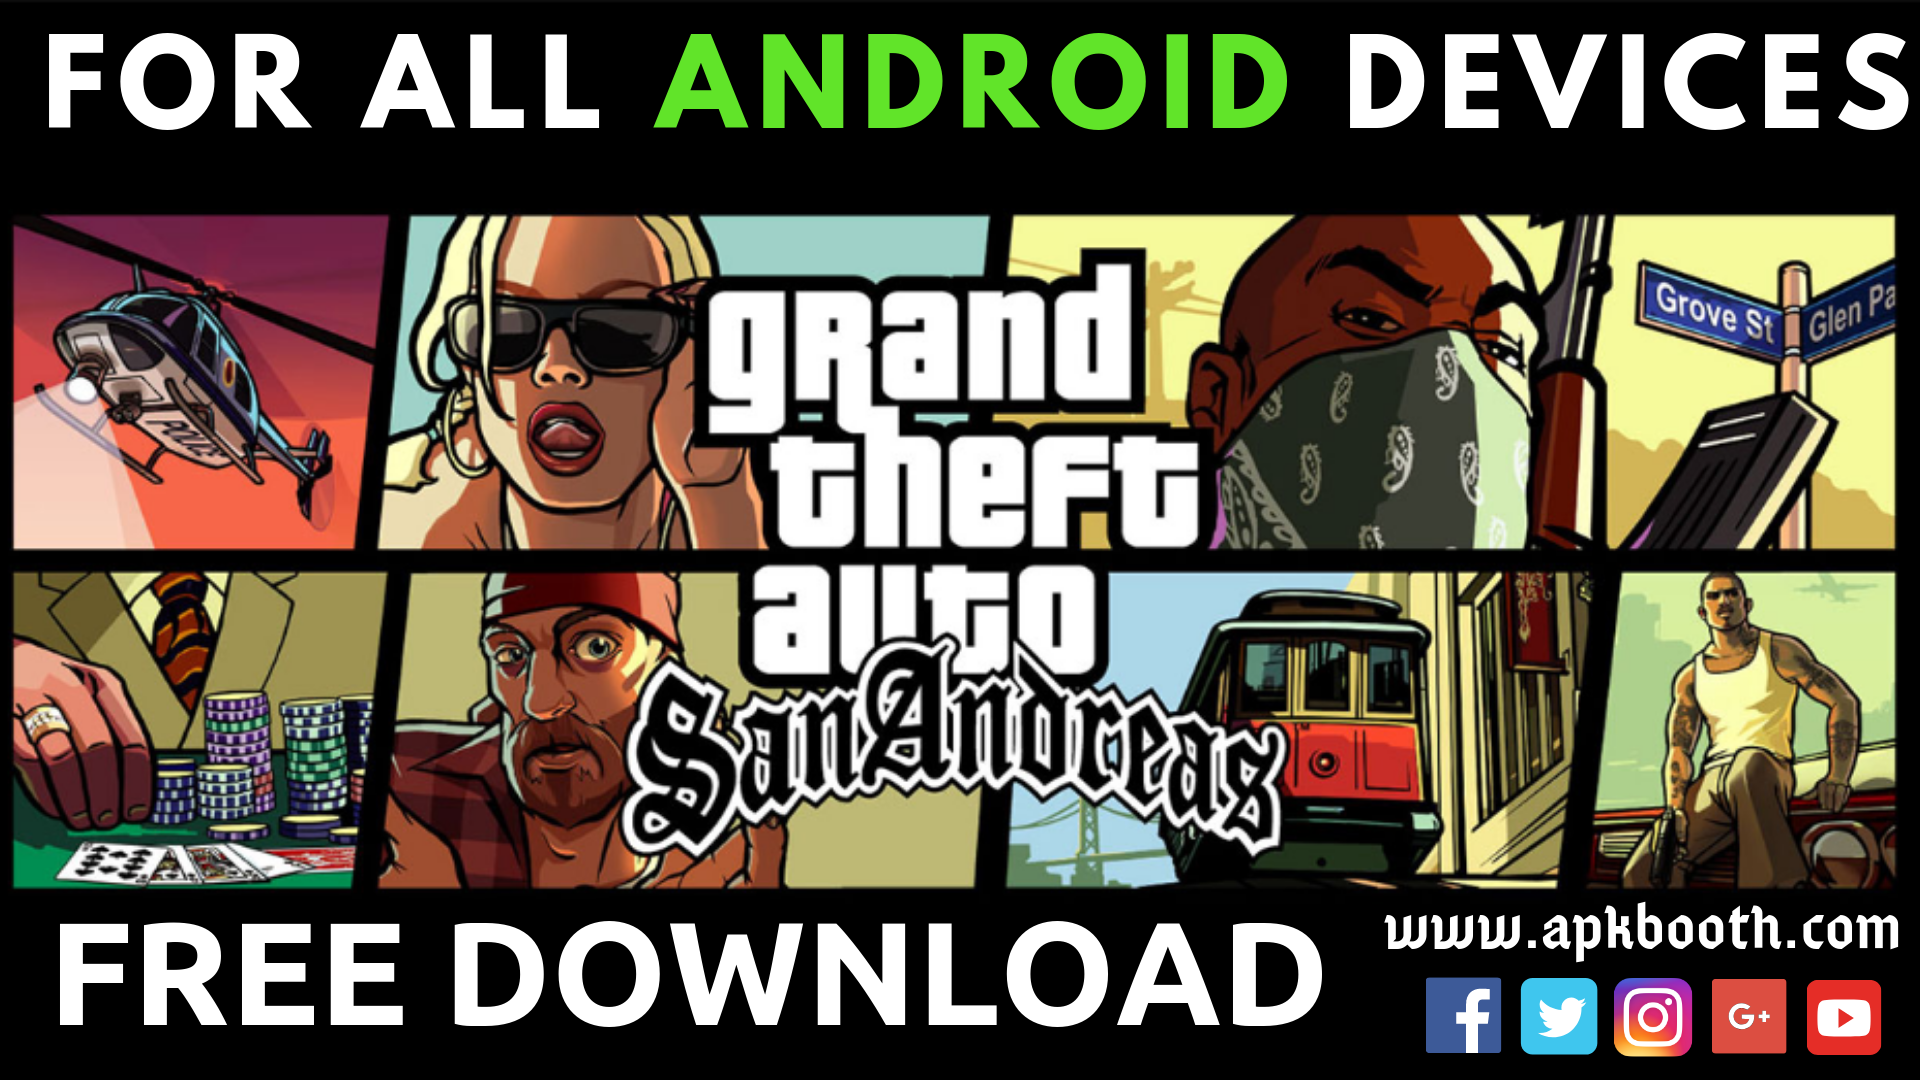 GTA:San Andreas Download Free for All Android Devices